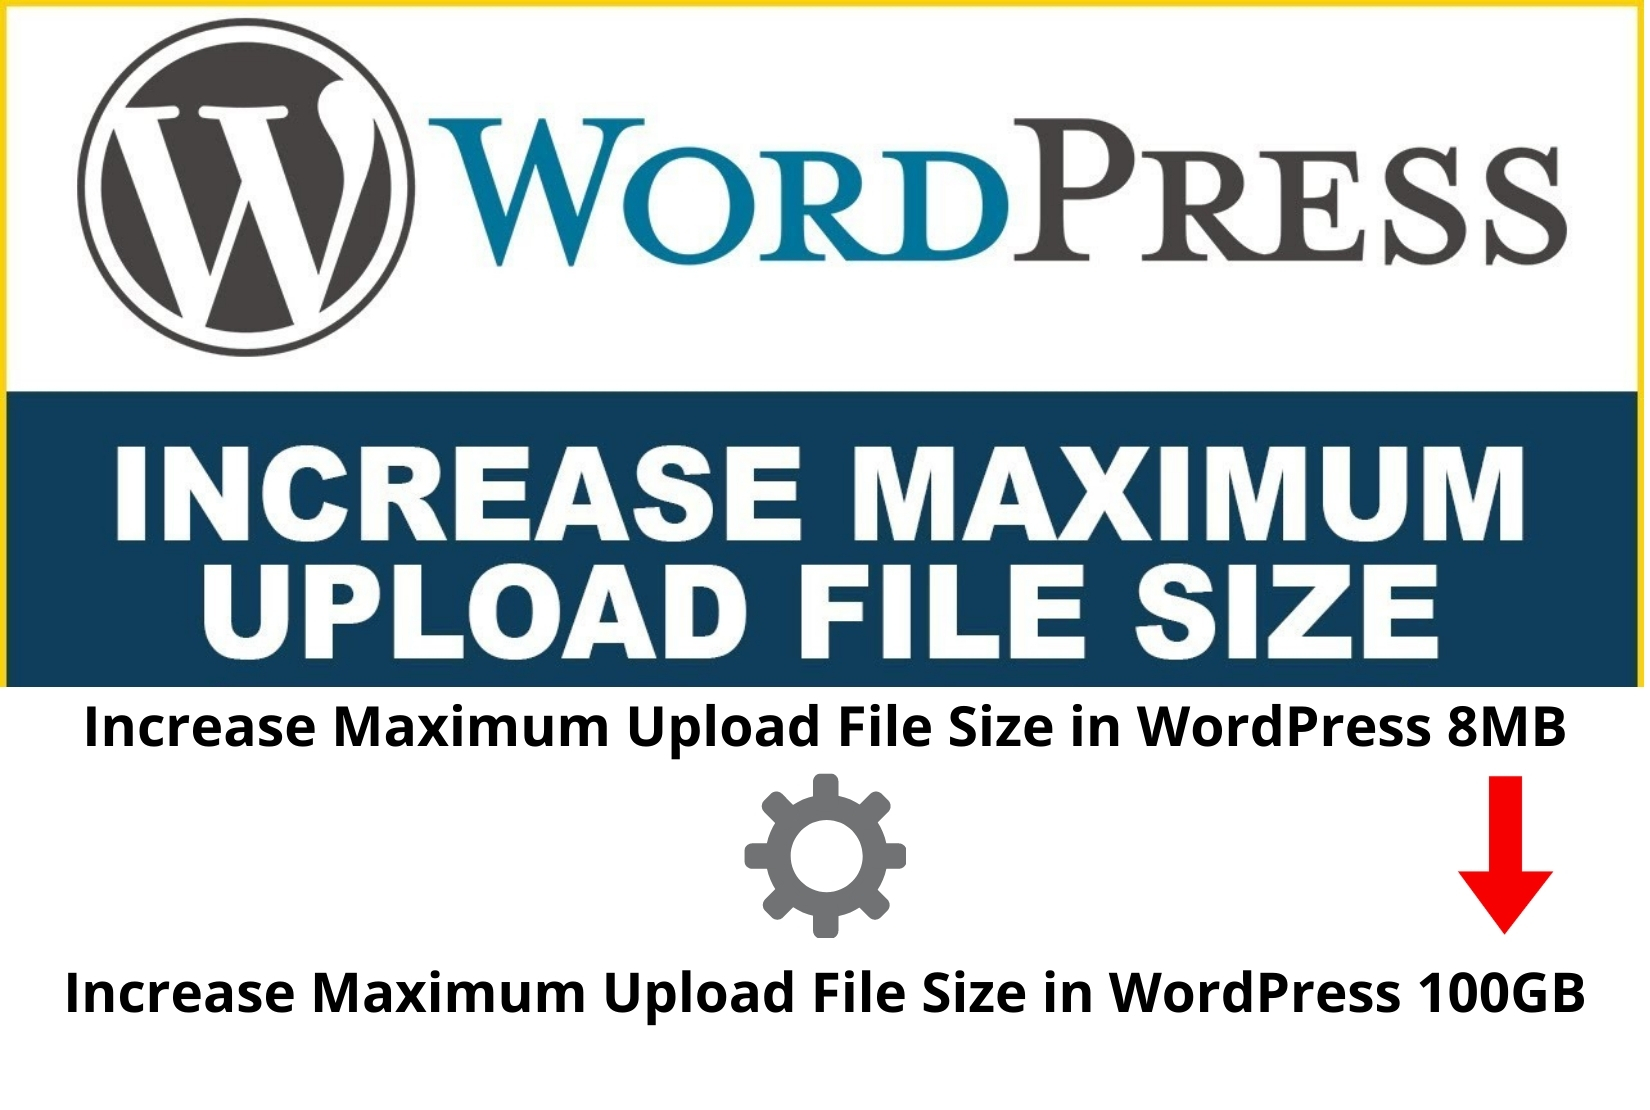 Increase the Maximum Upload File Size in WordPress From 8 MB to 100 GB